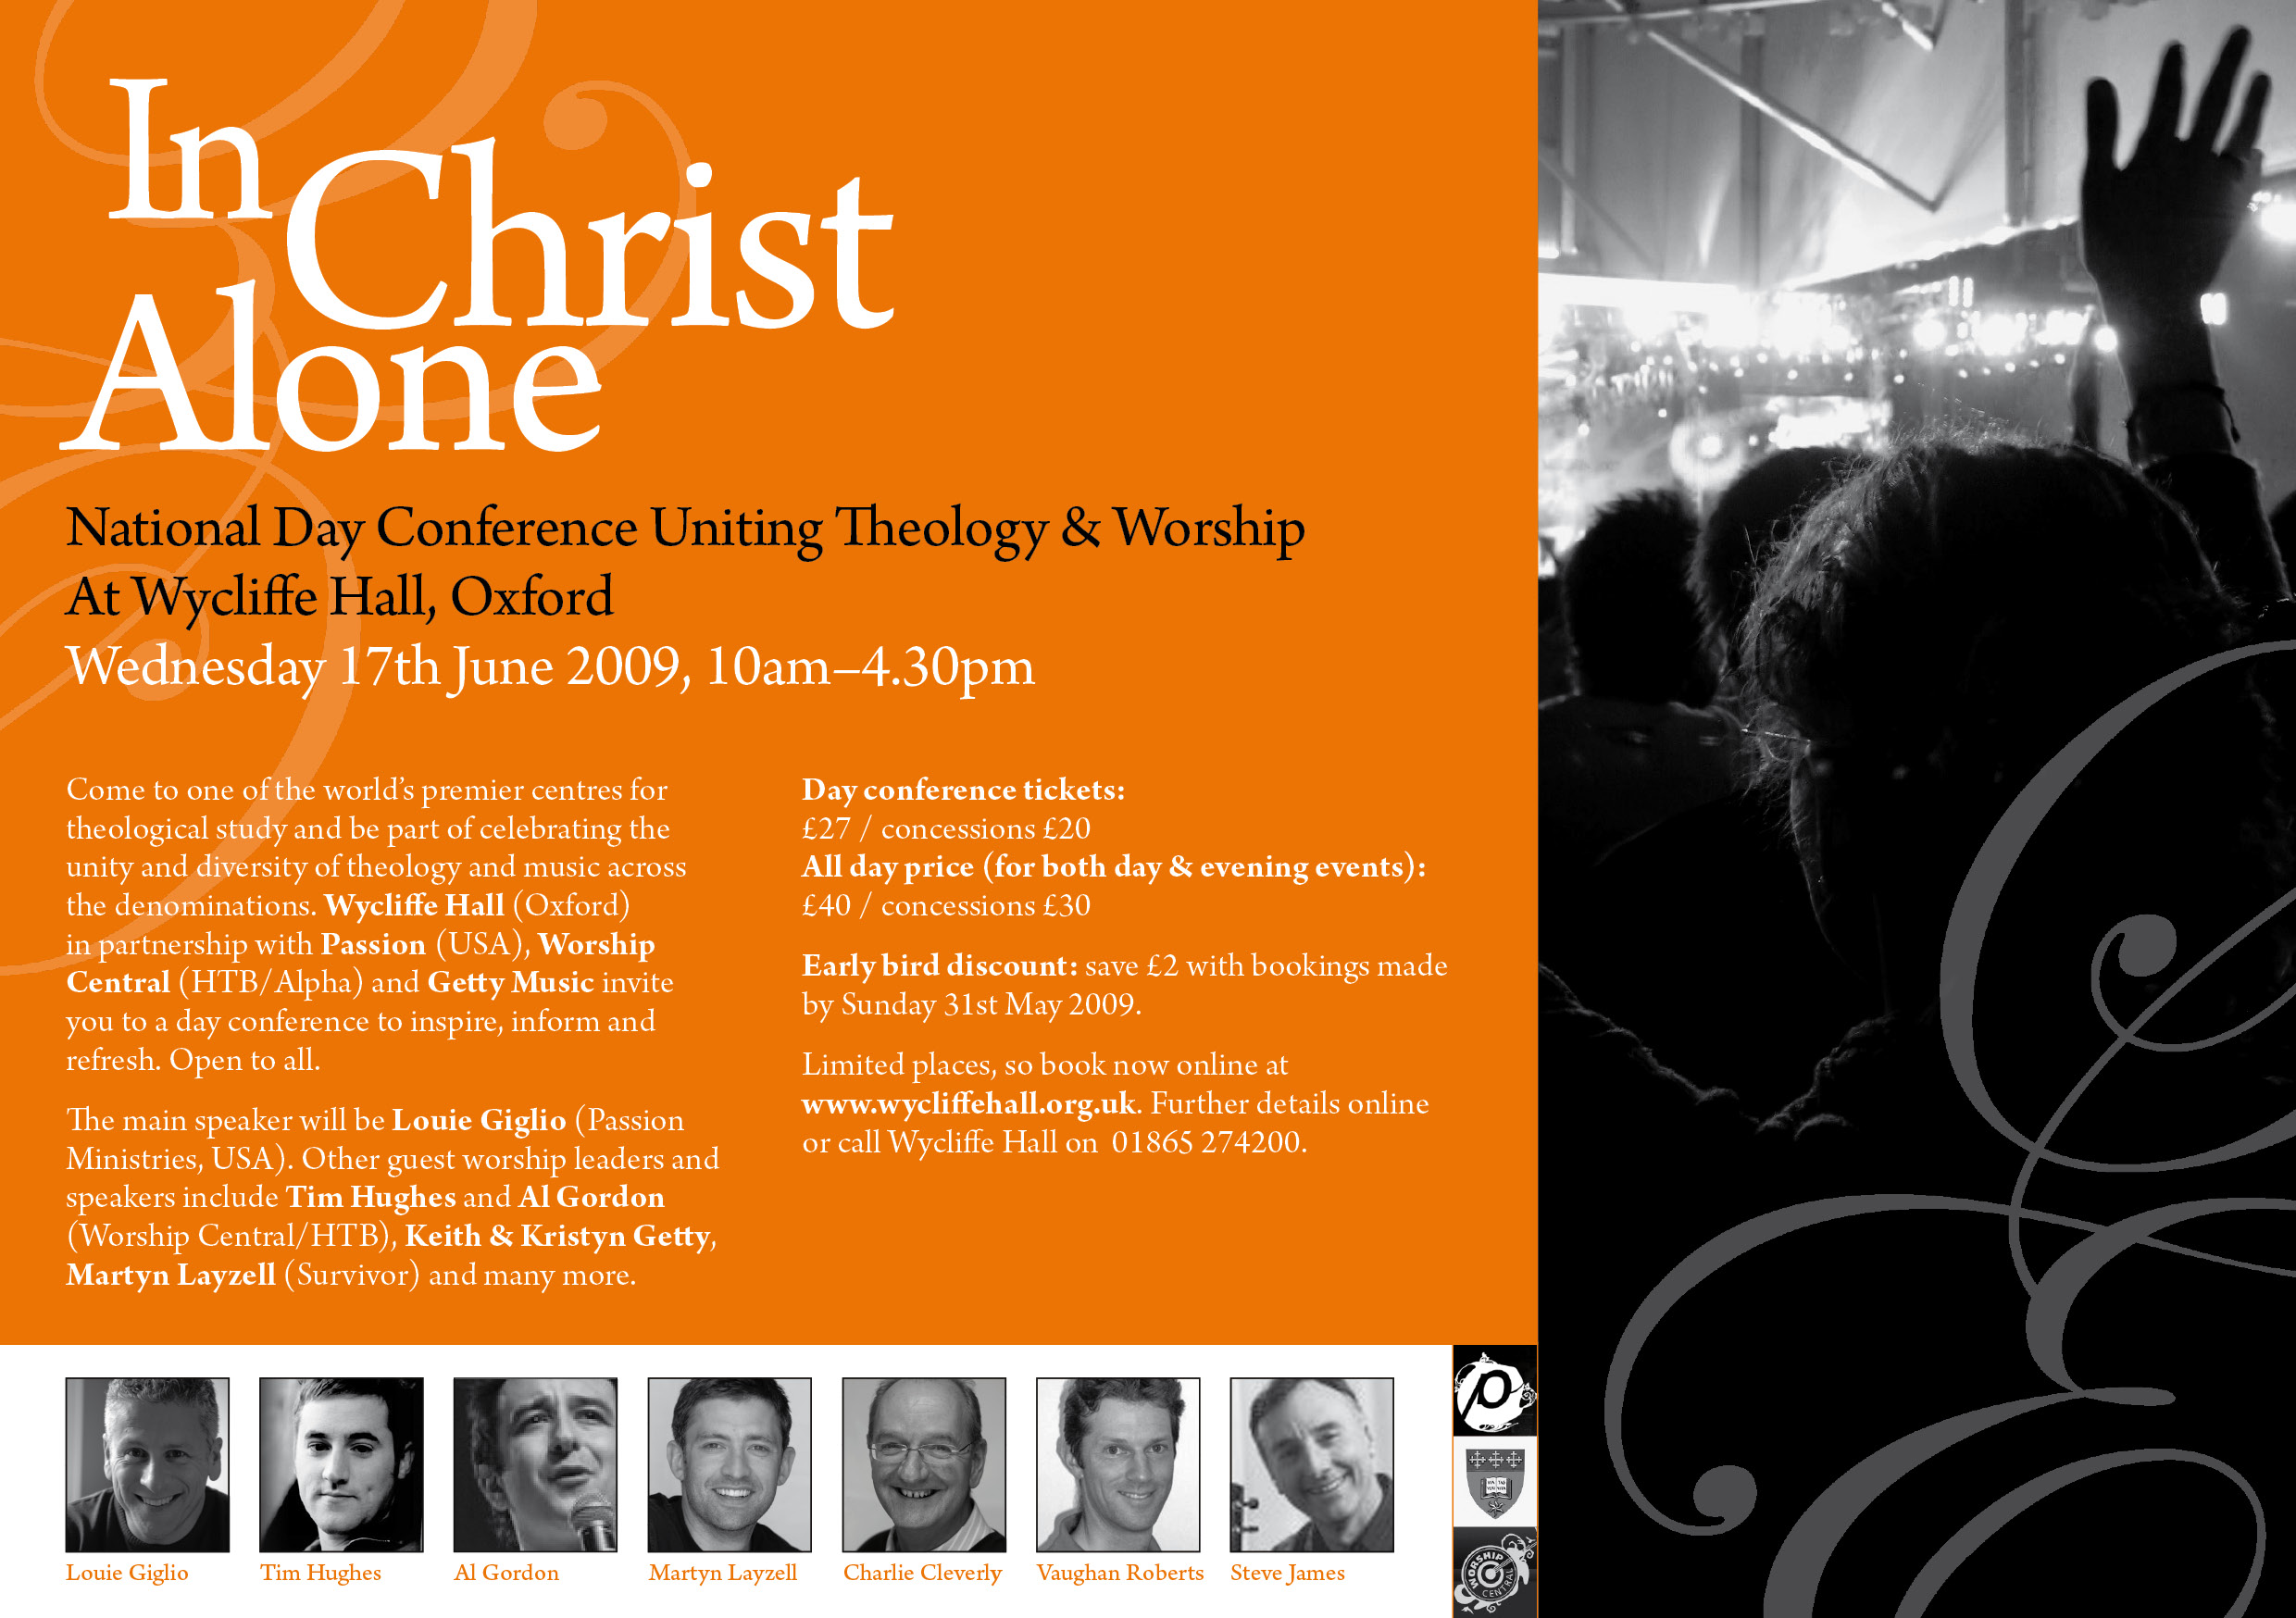 In Christ Alone – Louie Giglio, Tim Hughes, Keith Getty and others at Oxford conference